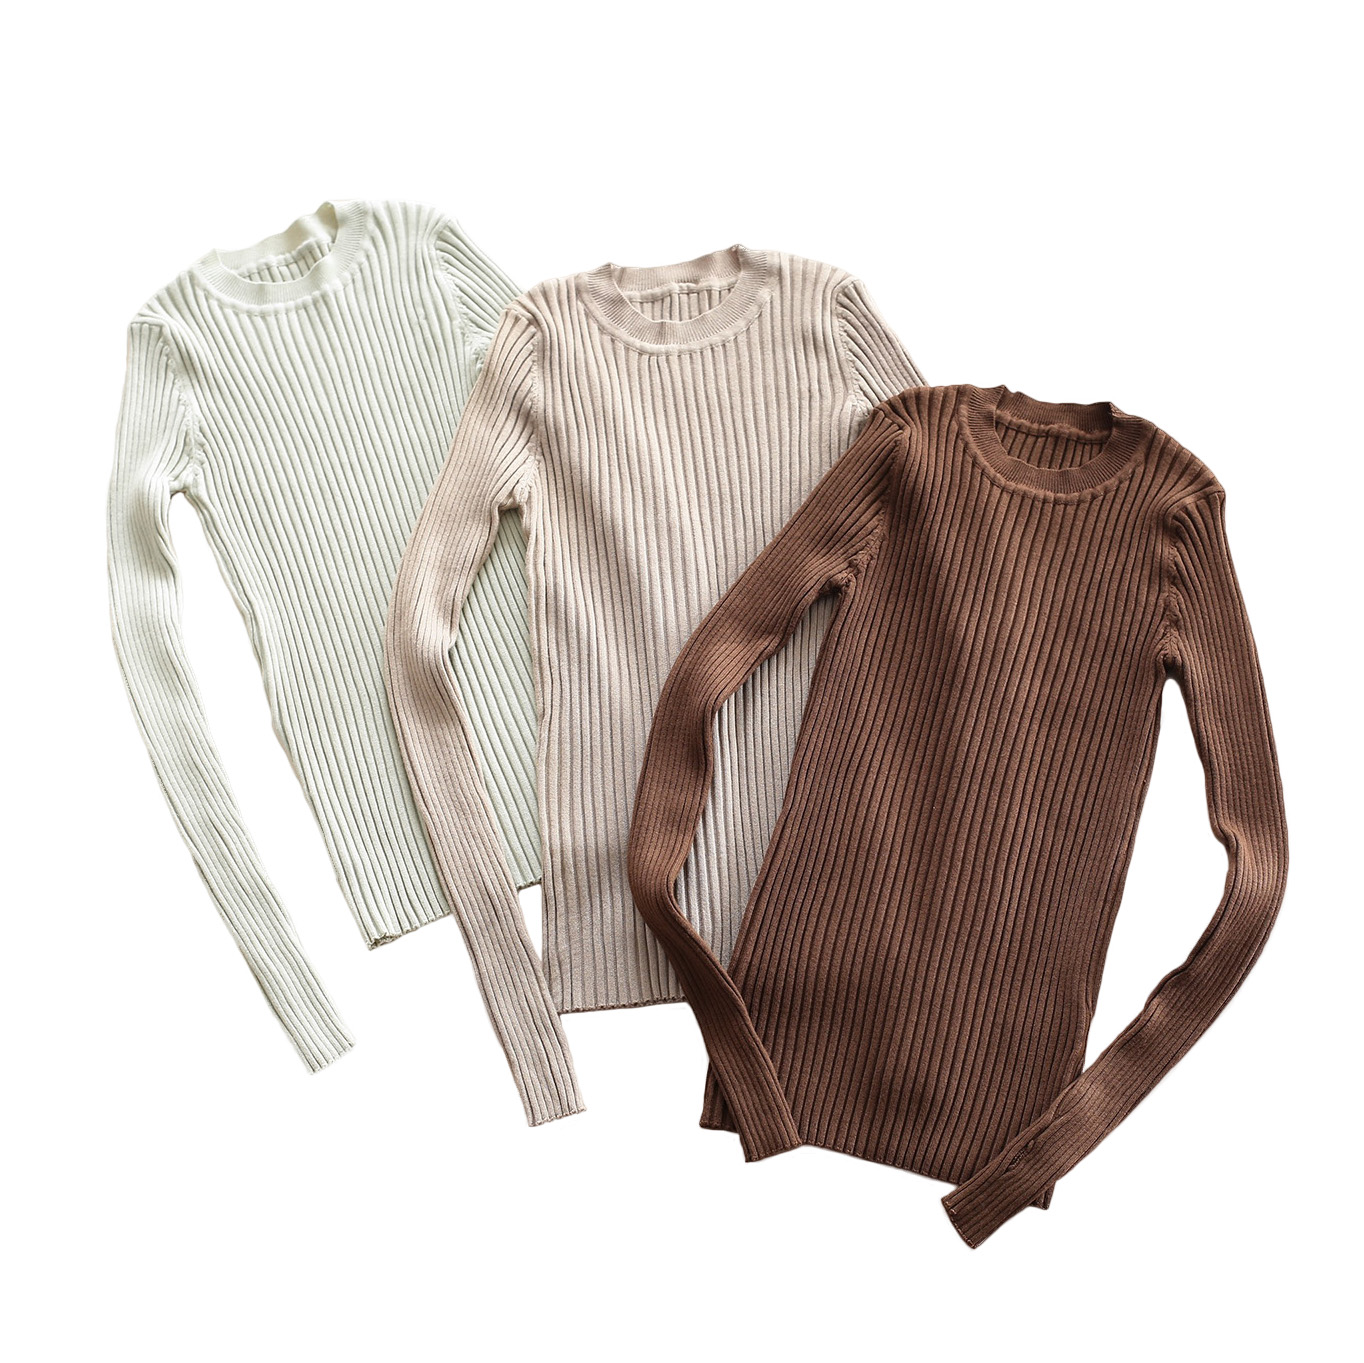 Embellike Women Pullover Sweater Basic Ribbed Cotton Tops Crew Neck Slim Fitted Rib Sweaters With Thumb Hole